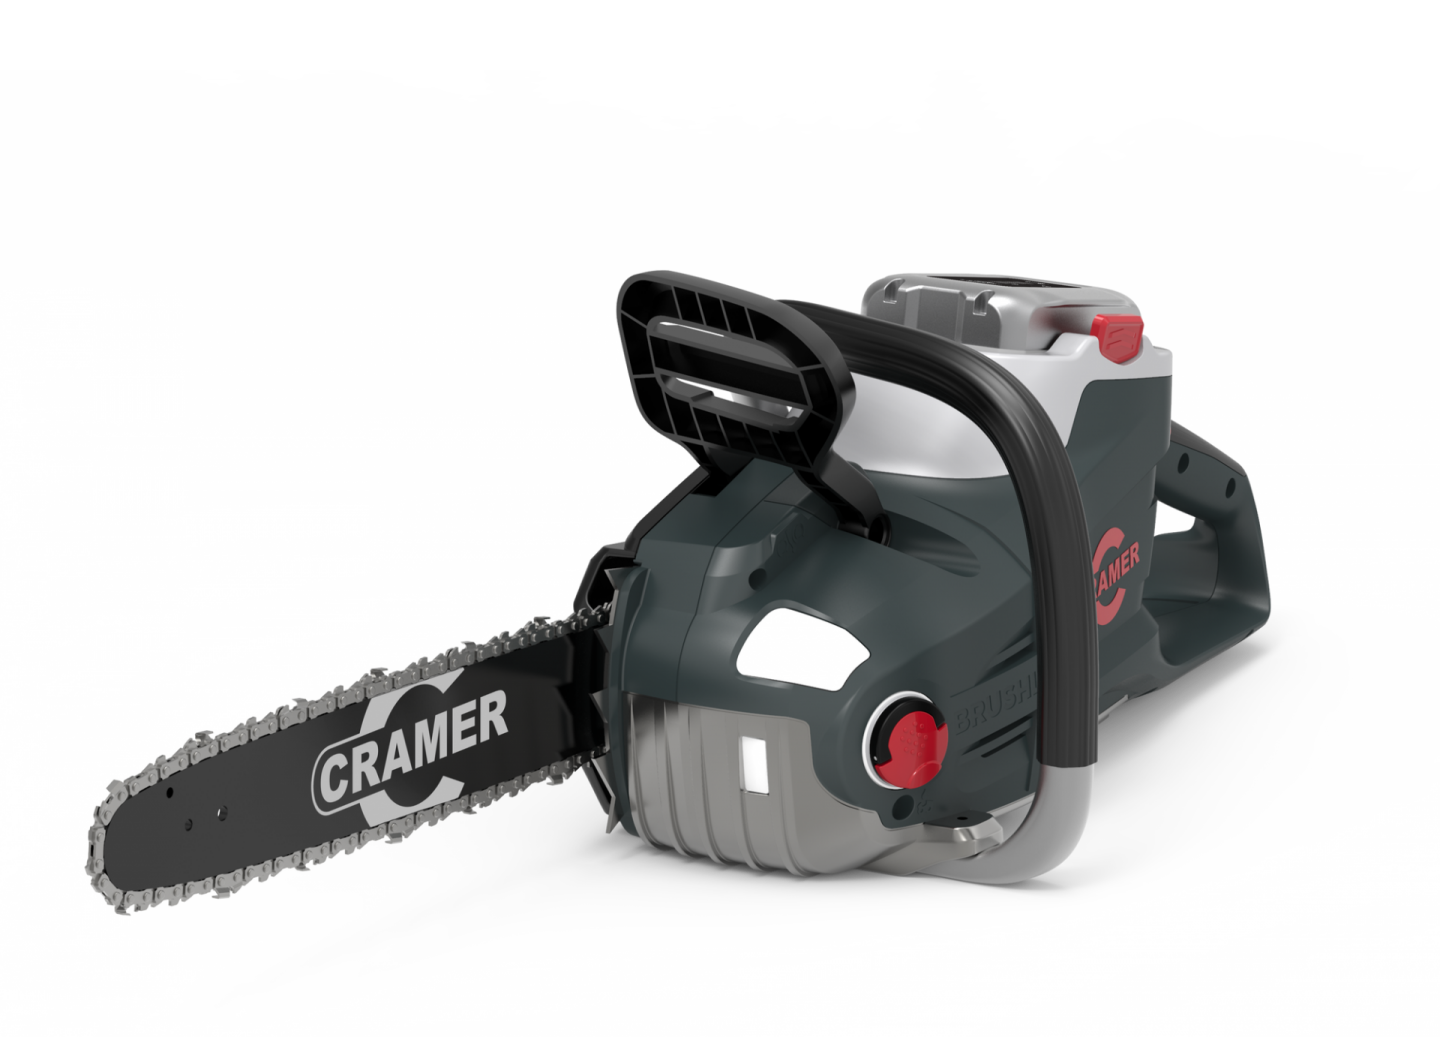 Cramer – new chain saw manufacturer in Jönköping, Sweden